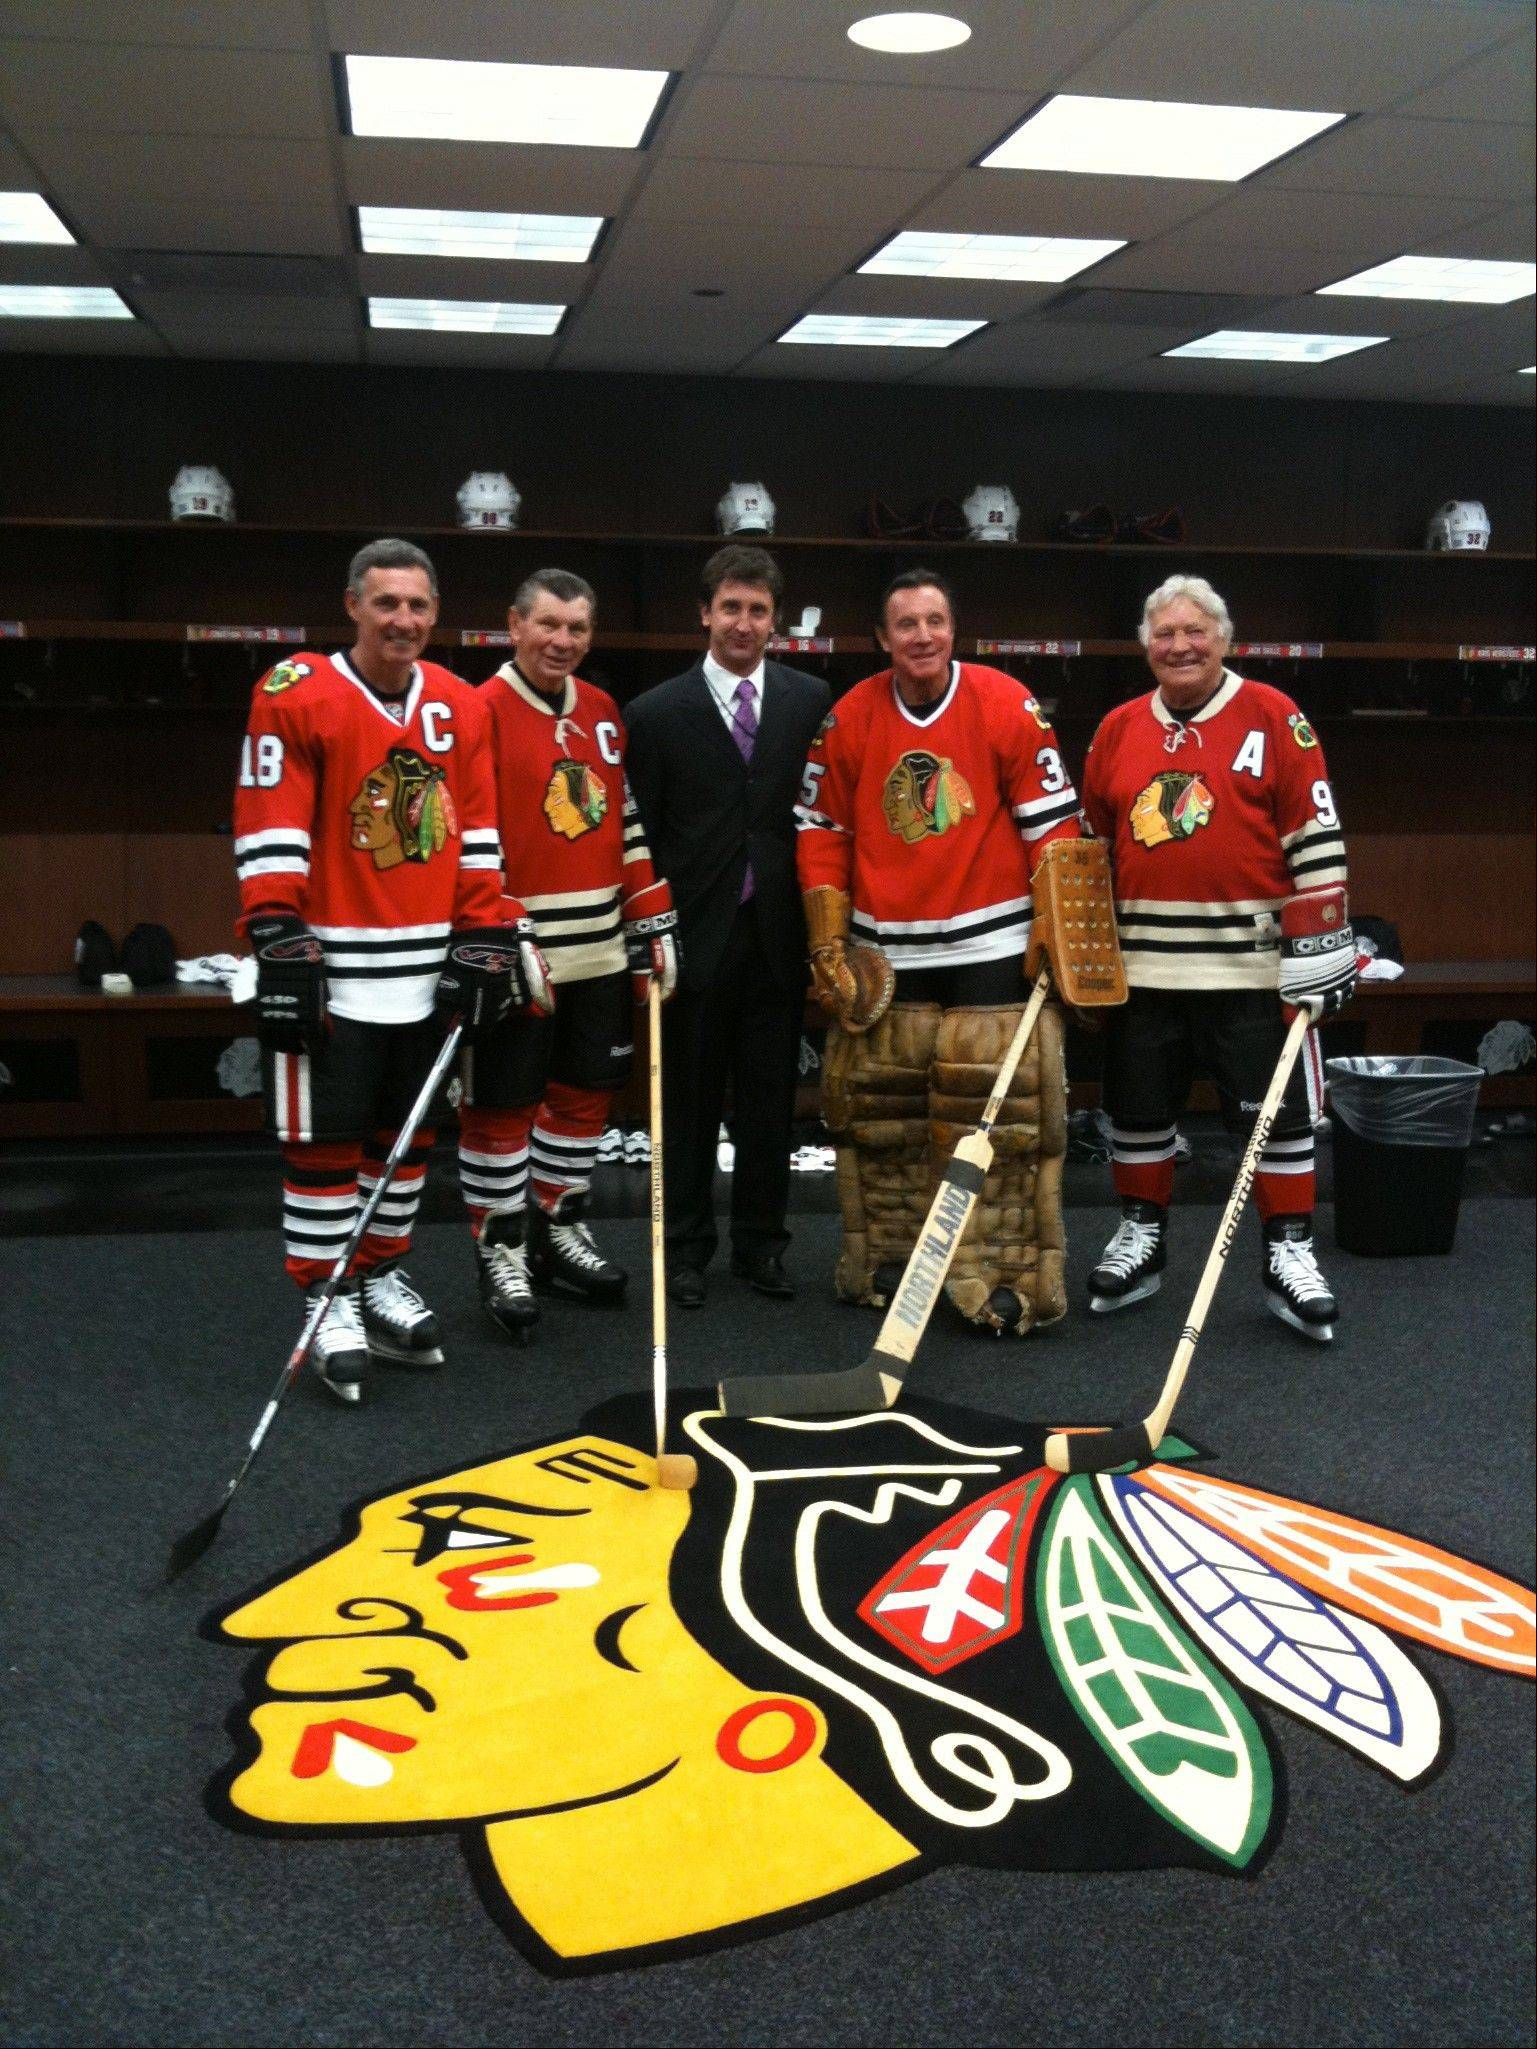 Photo courtesy Michael TerryBlackhawks head doctor Michael Terry with members of the Blackhawks organization in the team locker room at the United Center.